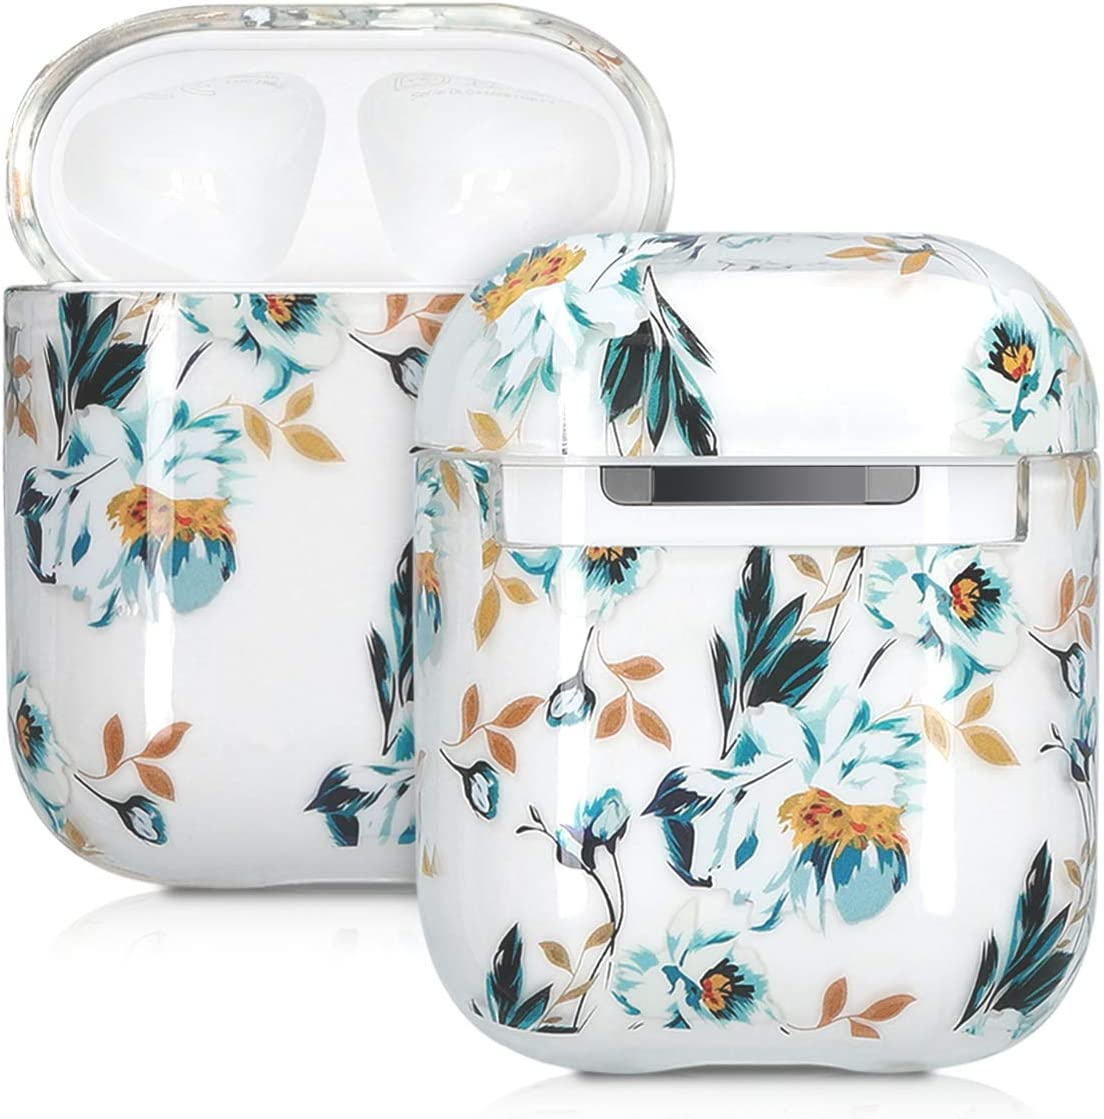 kwmobile Earphones Case Compatible with Apple AirPods - Anti-Scratch Protective Two-Part Earbuds Case - AirPod Flowers Blue/Yellow/Transparent